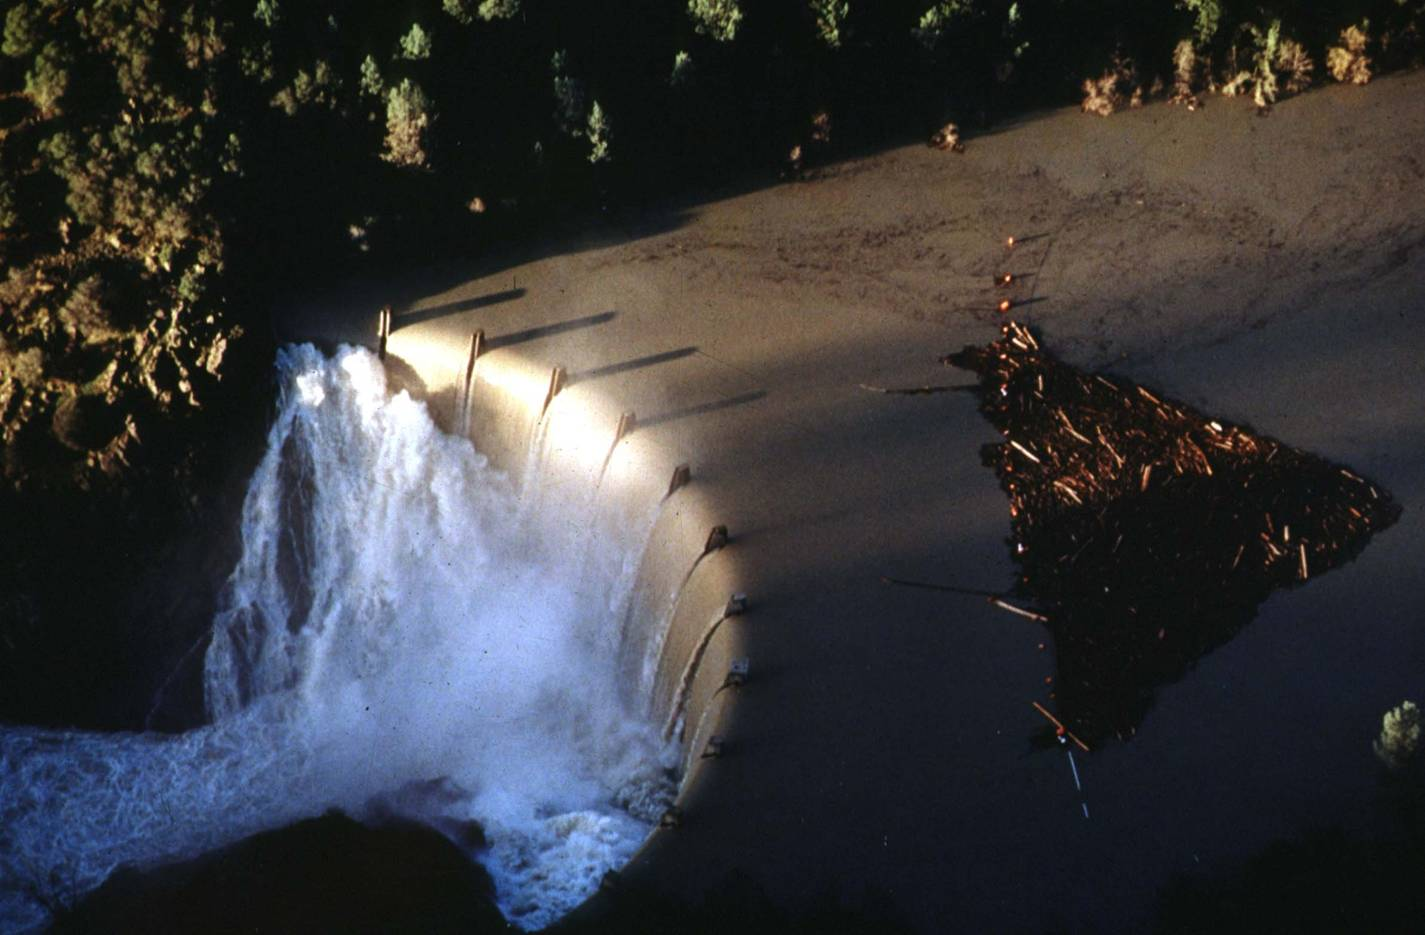 englebright_spillway-1997_flood_3.jpg